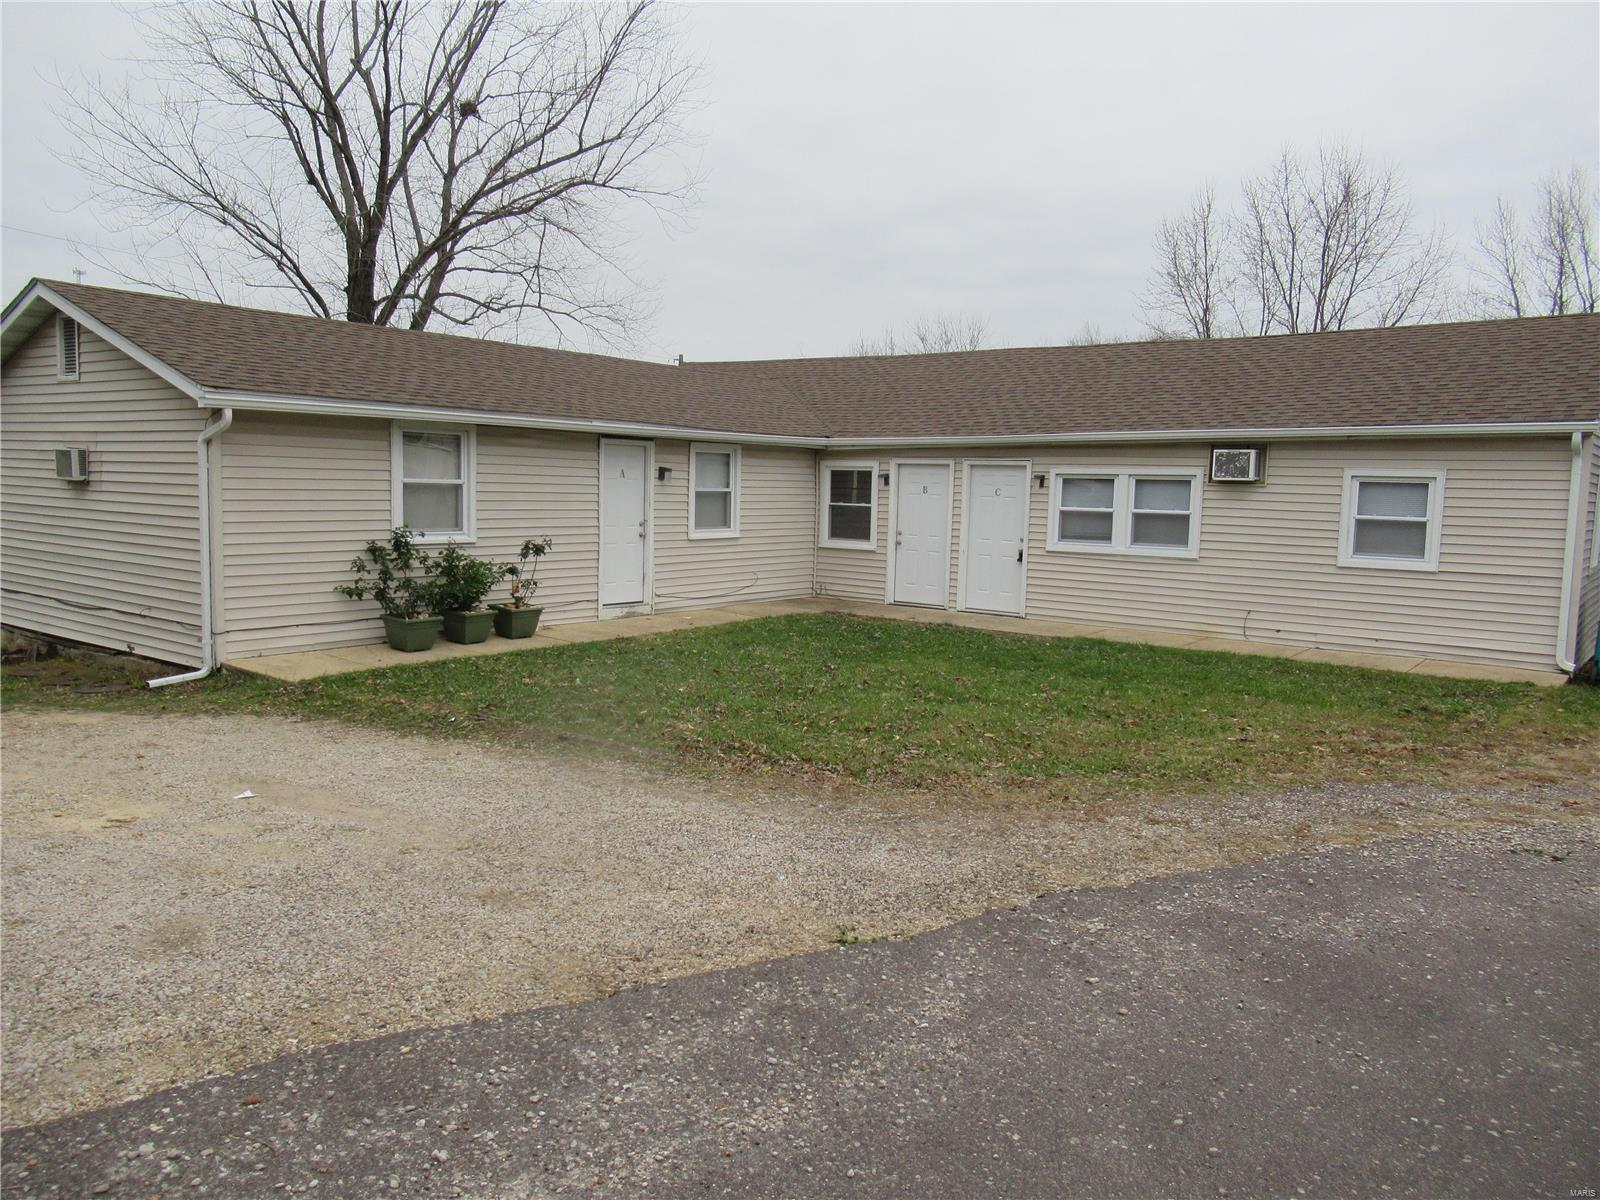 333 Colby Street #A,B,C Property Photo - Bourbon, MO real estate listing